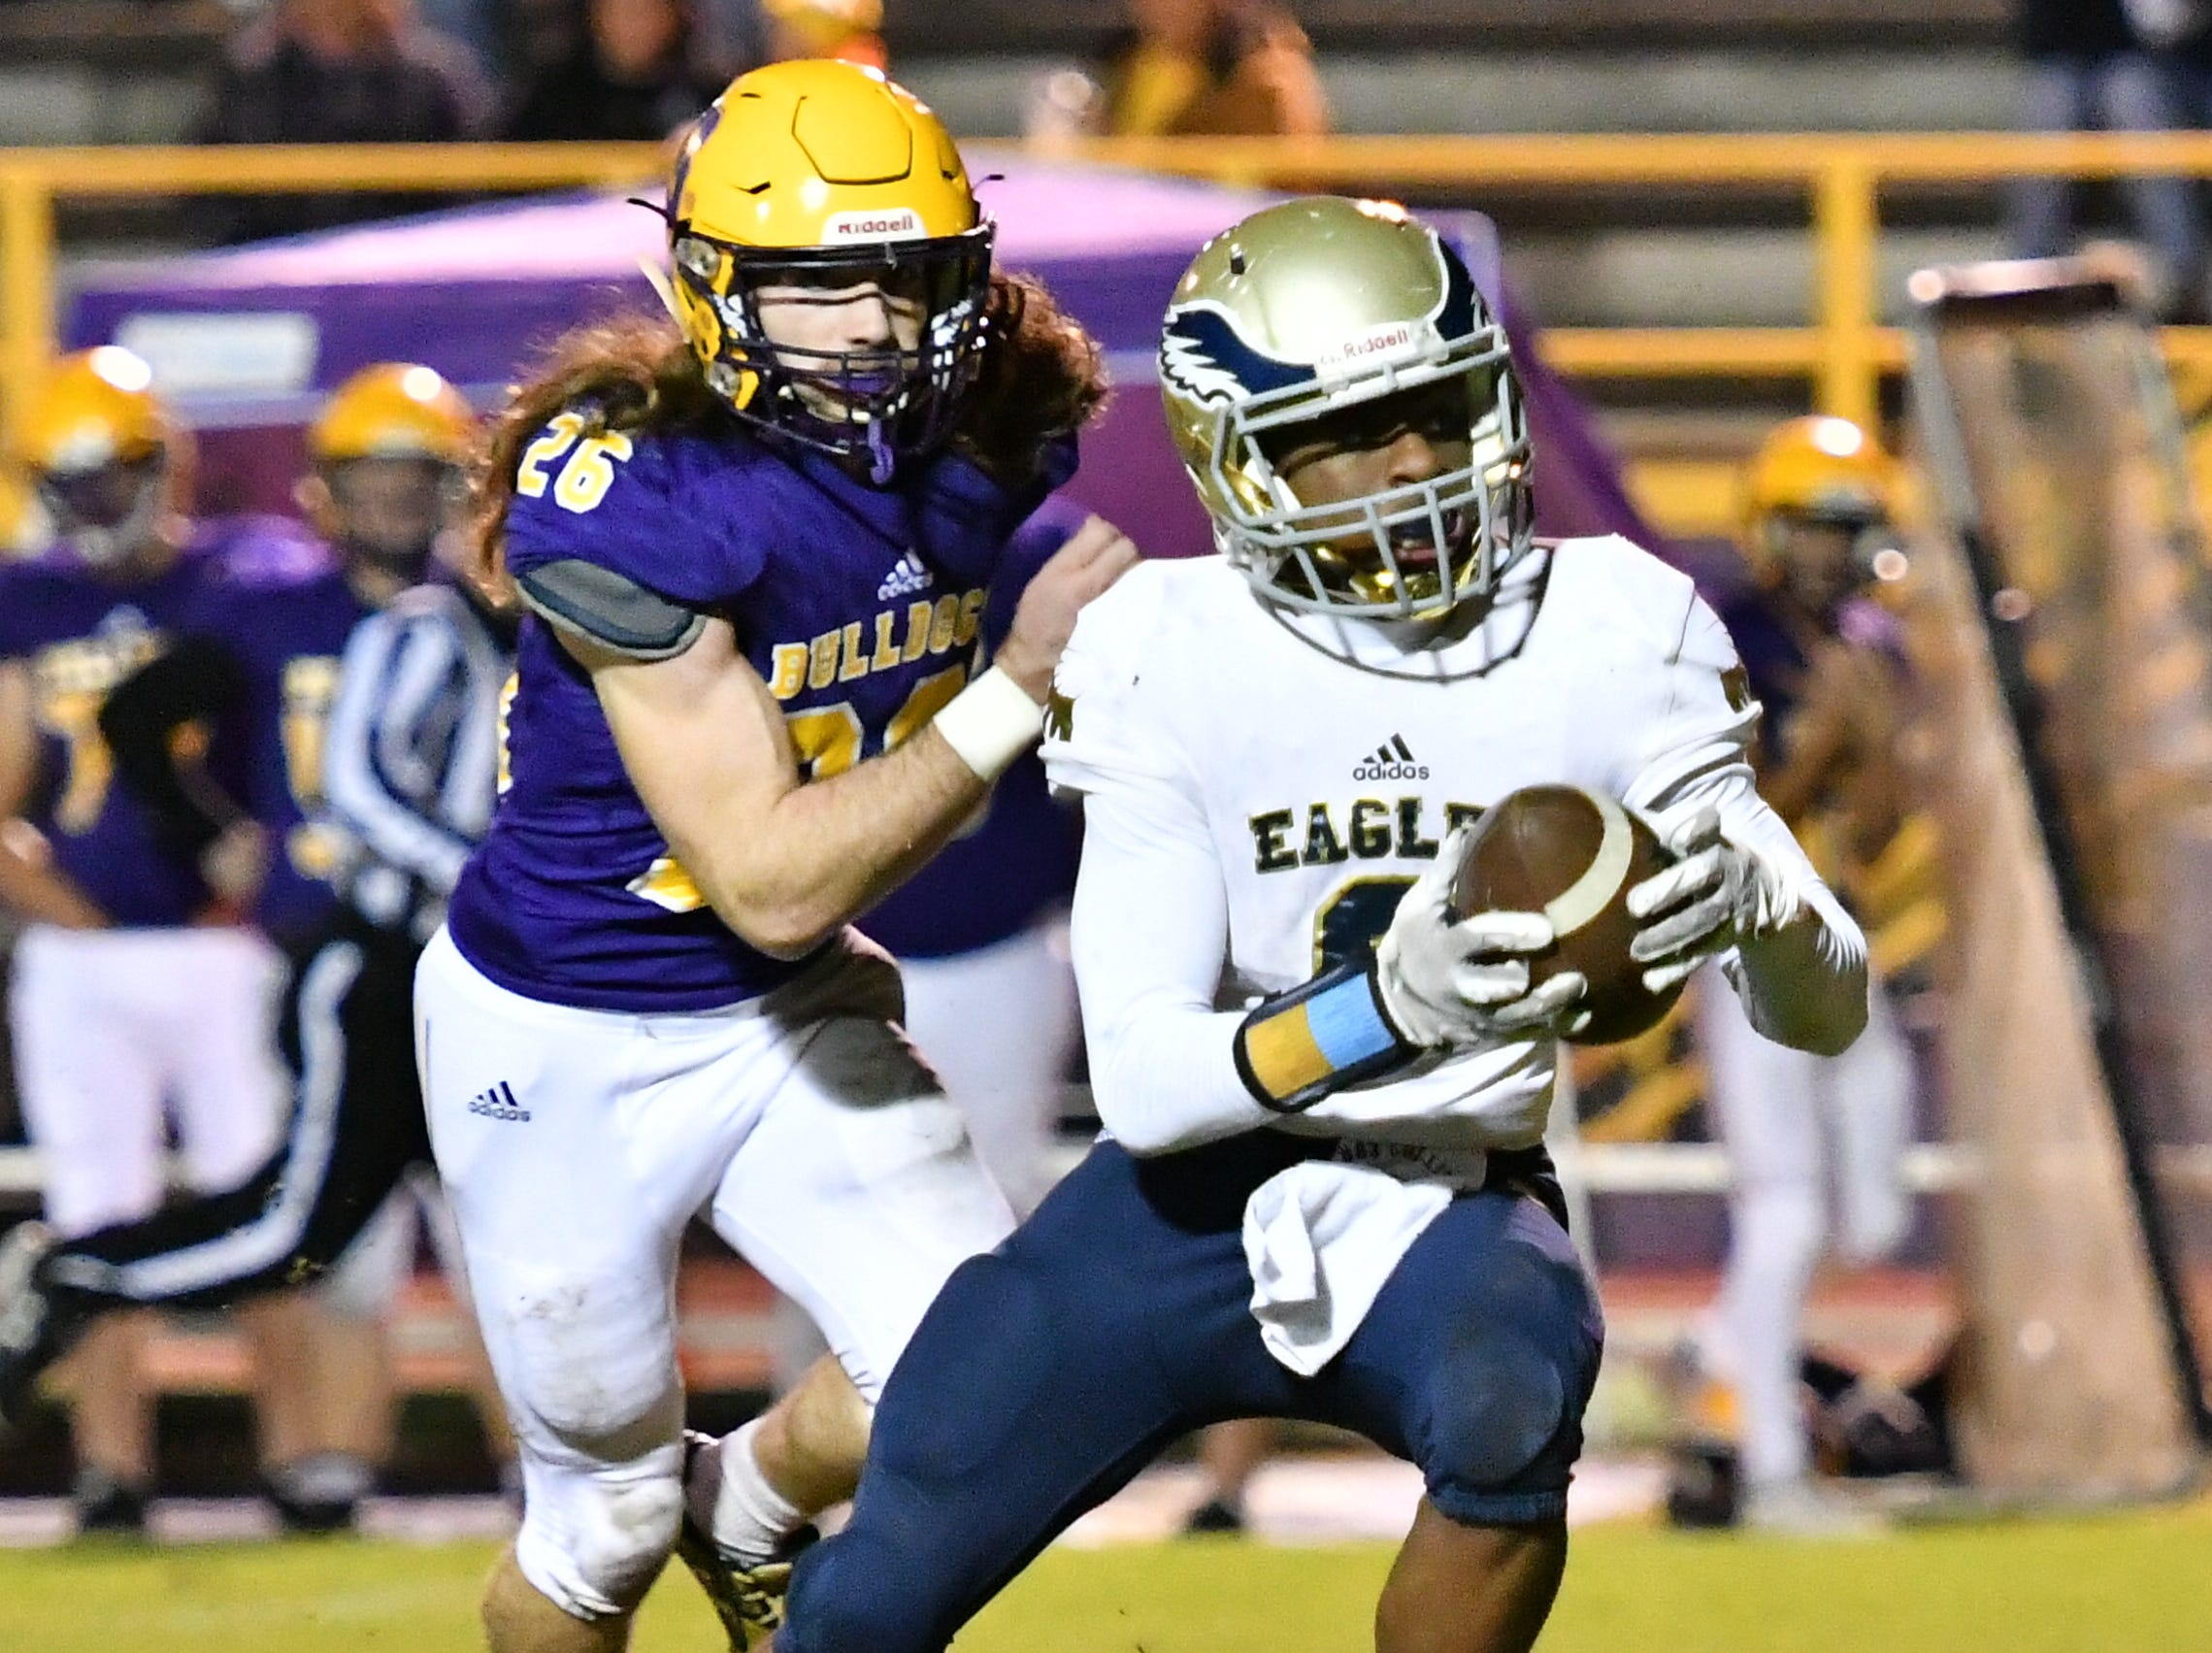 Independence's Isaiah Collier tries to elude Smyrna defenders, including Gaven Howell (26) Friday.